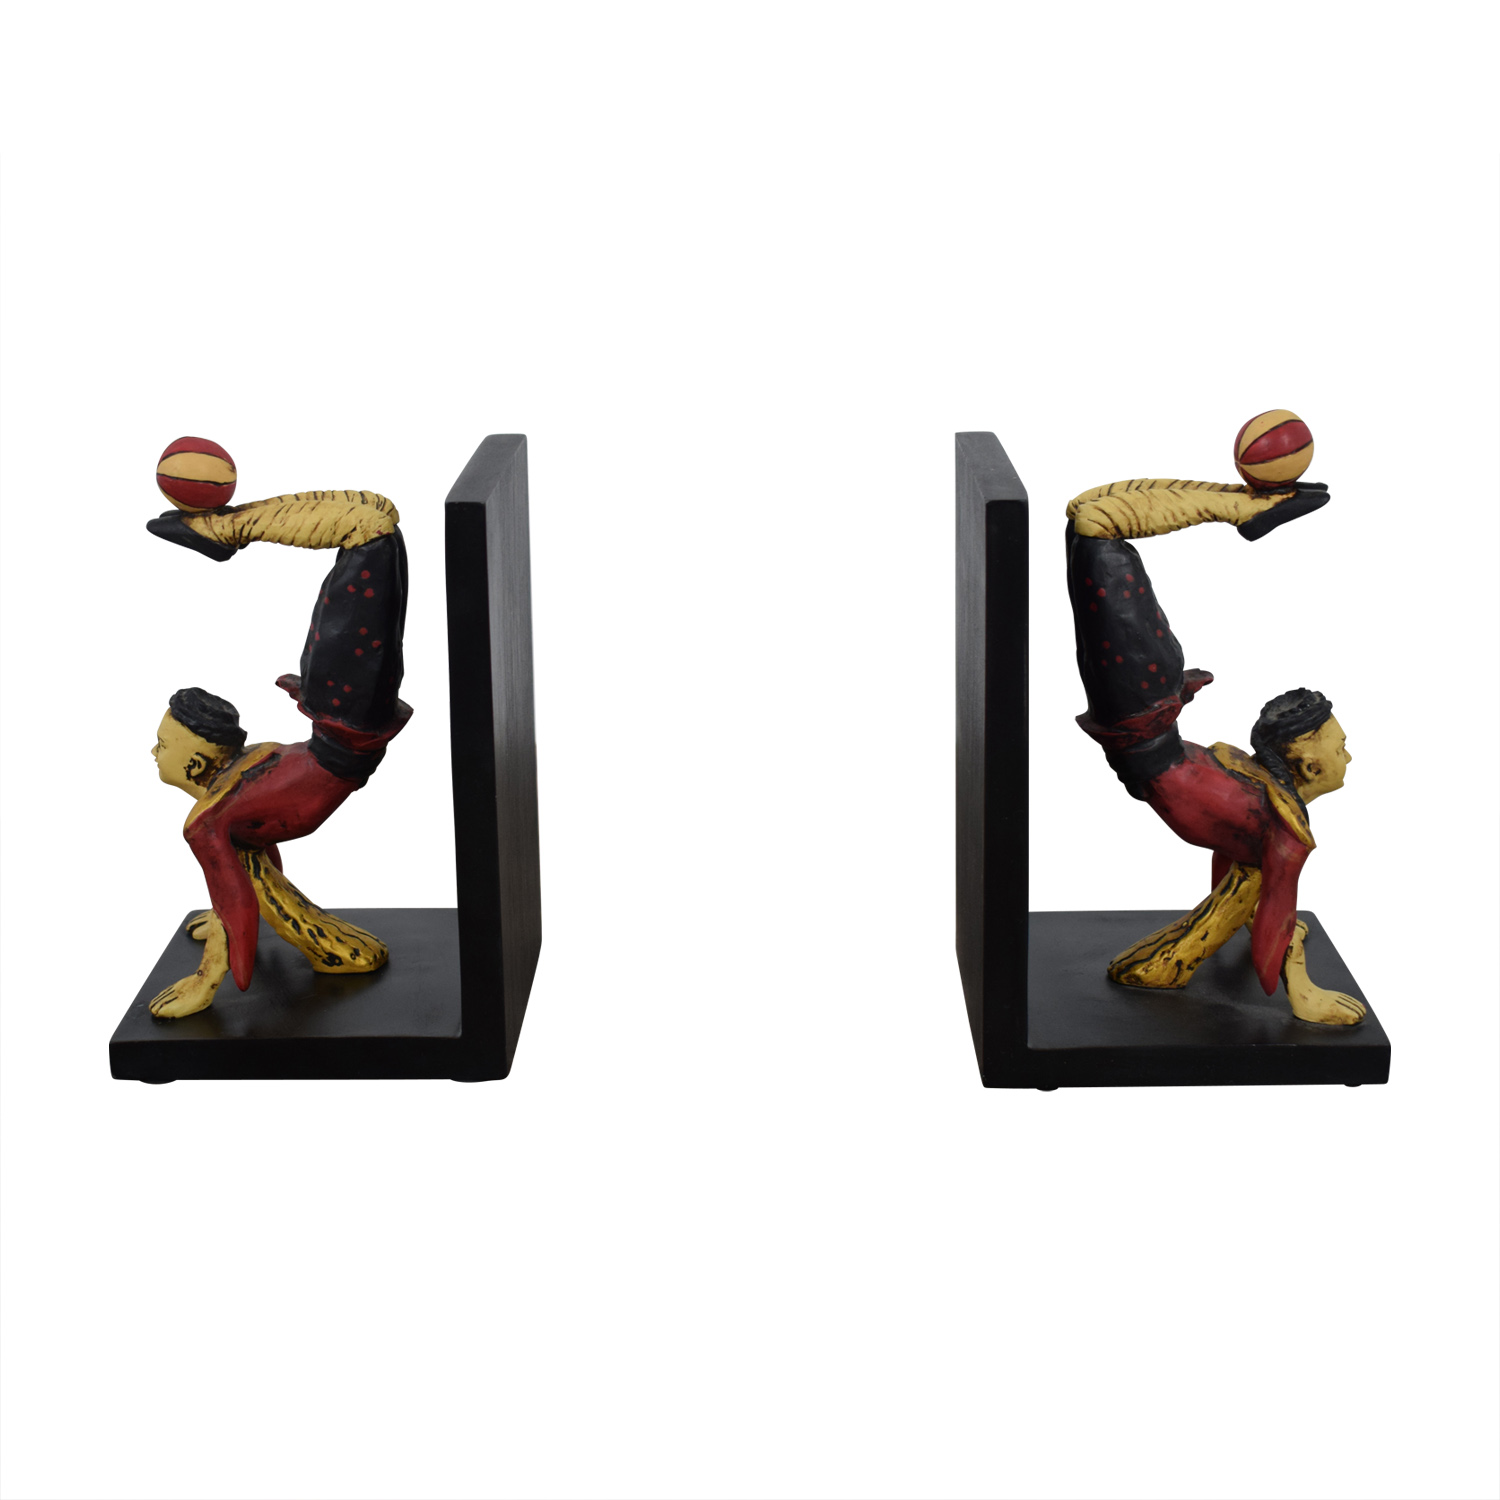 shop  Decorative Book Ends online